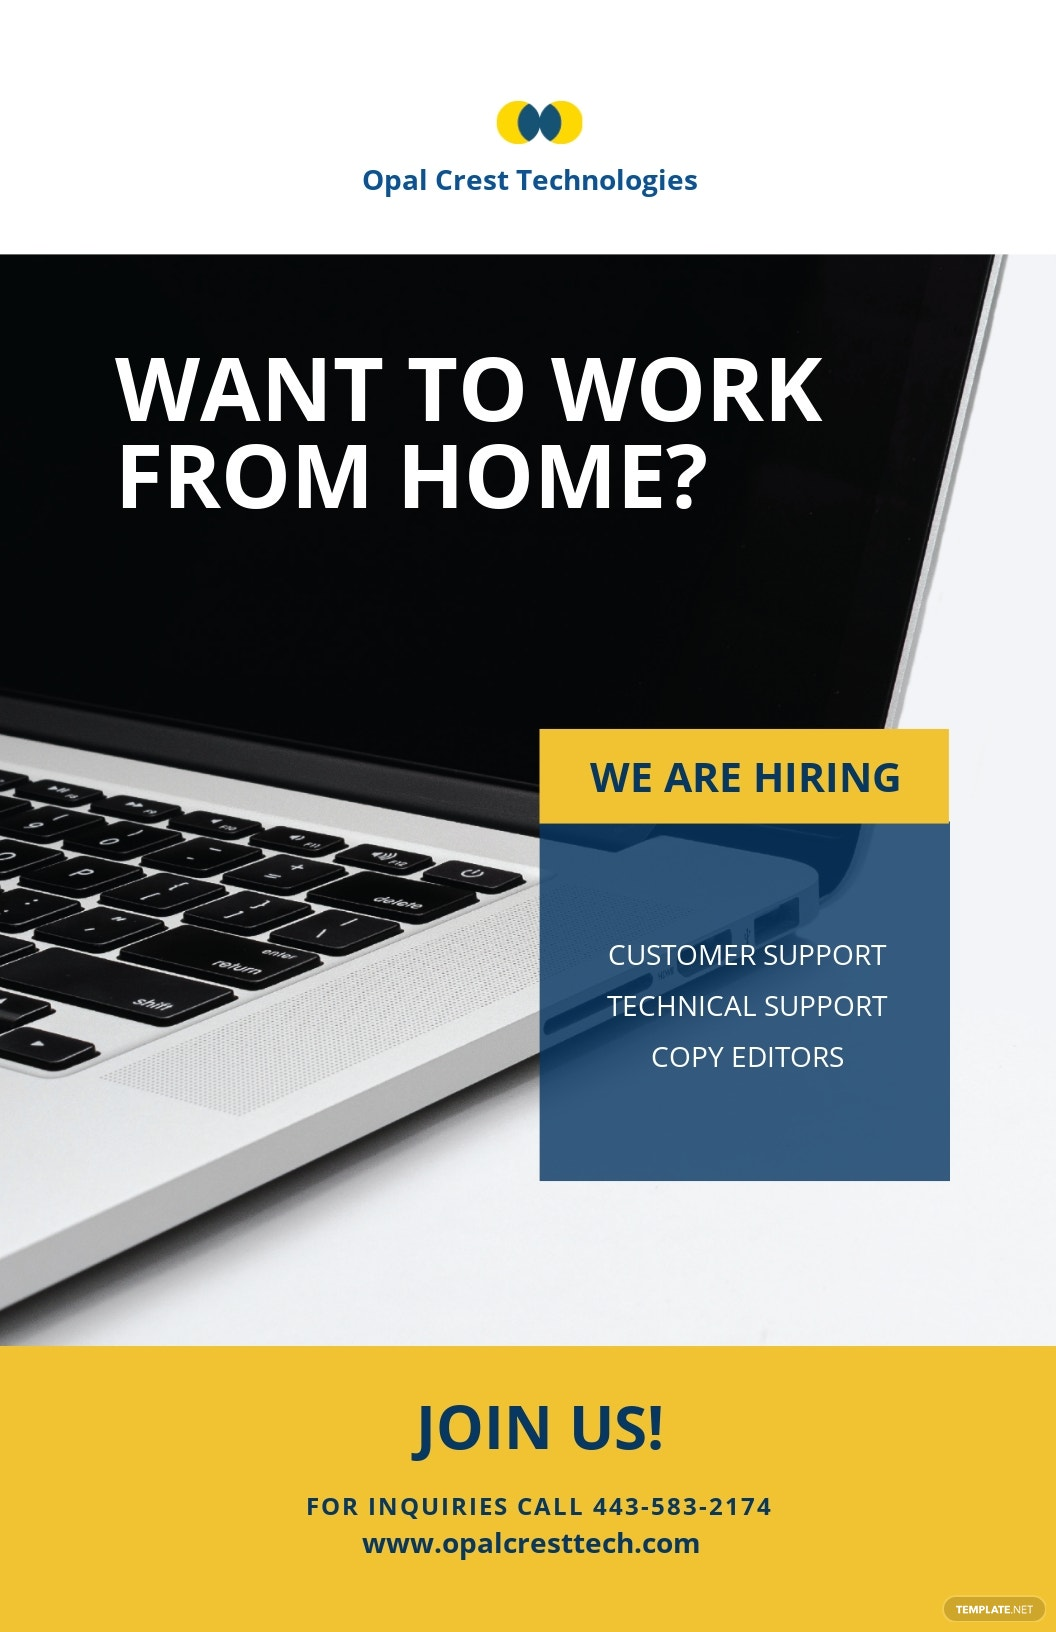 Free Creative Work From Home Poster Template.jpe